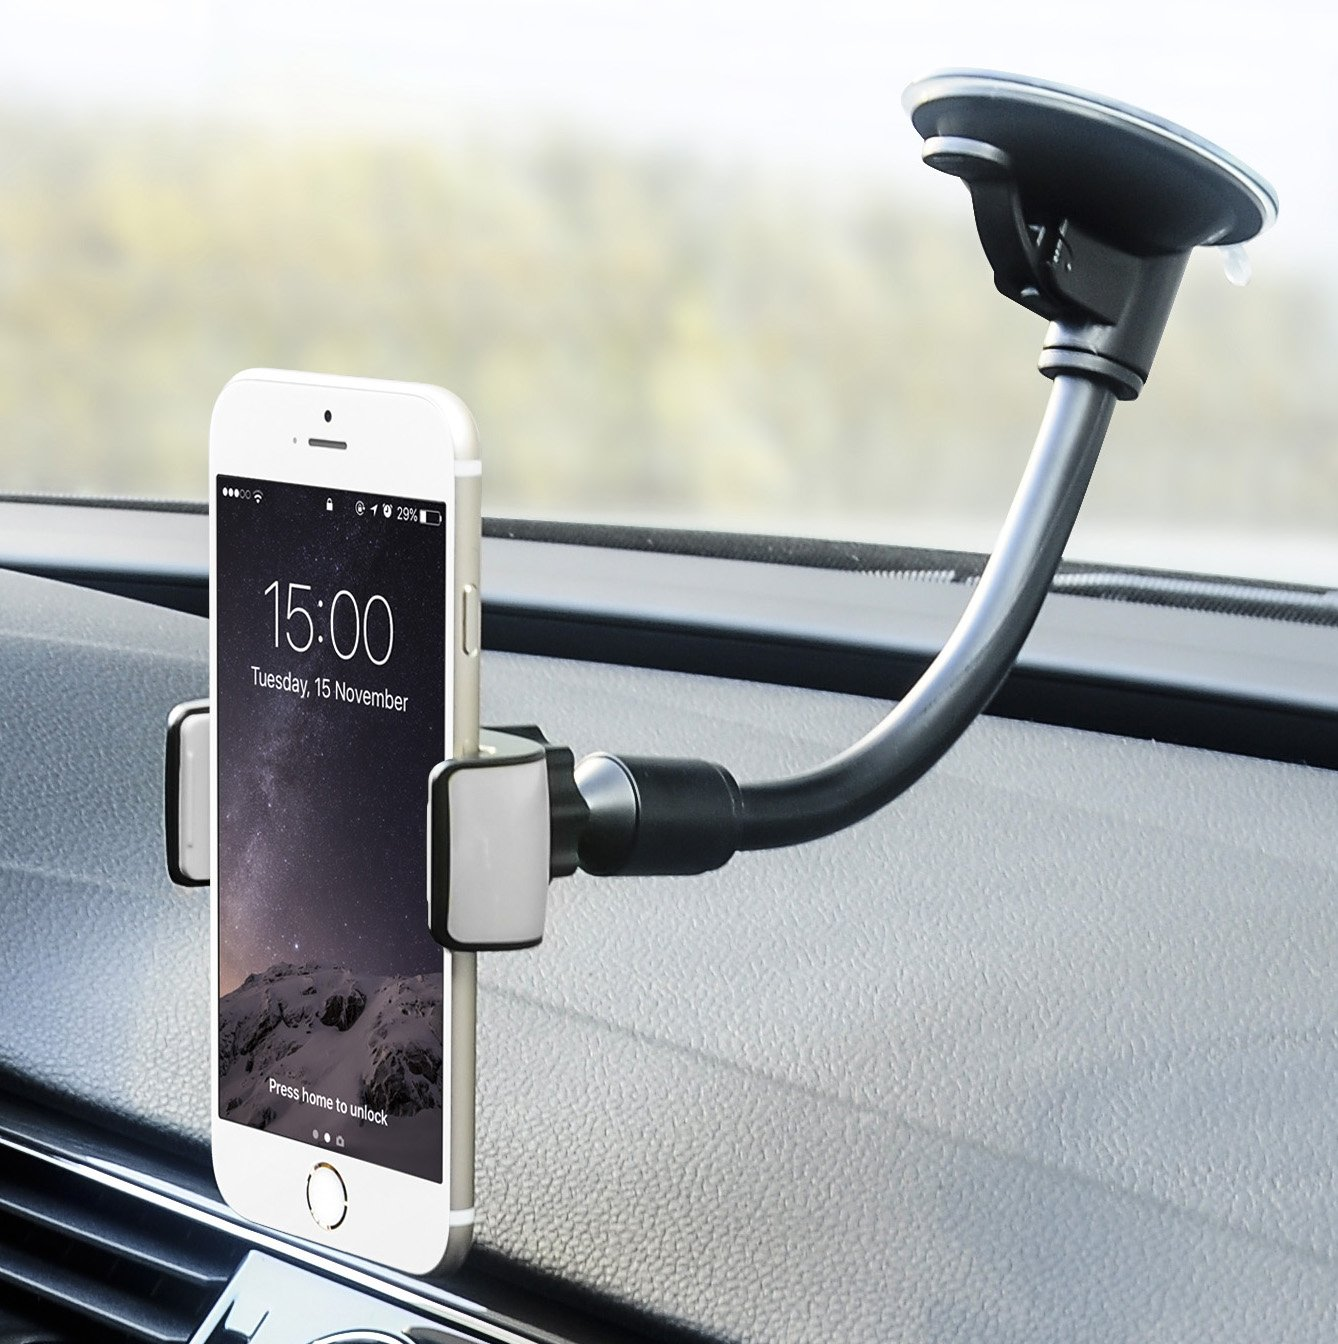 Car Mount, Universal Flexible Arm Windshield Car Phone Holder with Strong Suction Cup for iPhone X SE 7 Plus 6s 6 Plus 6 5s 5 4s 4 Samsung Galaxy S9 Plus S8 Note S7 Edge LG Nexus Sony Nokia and More